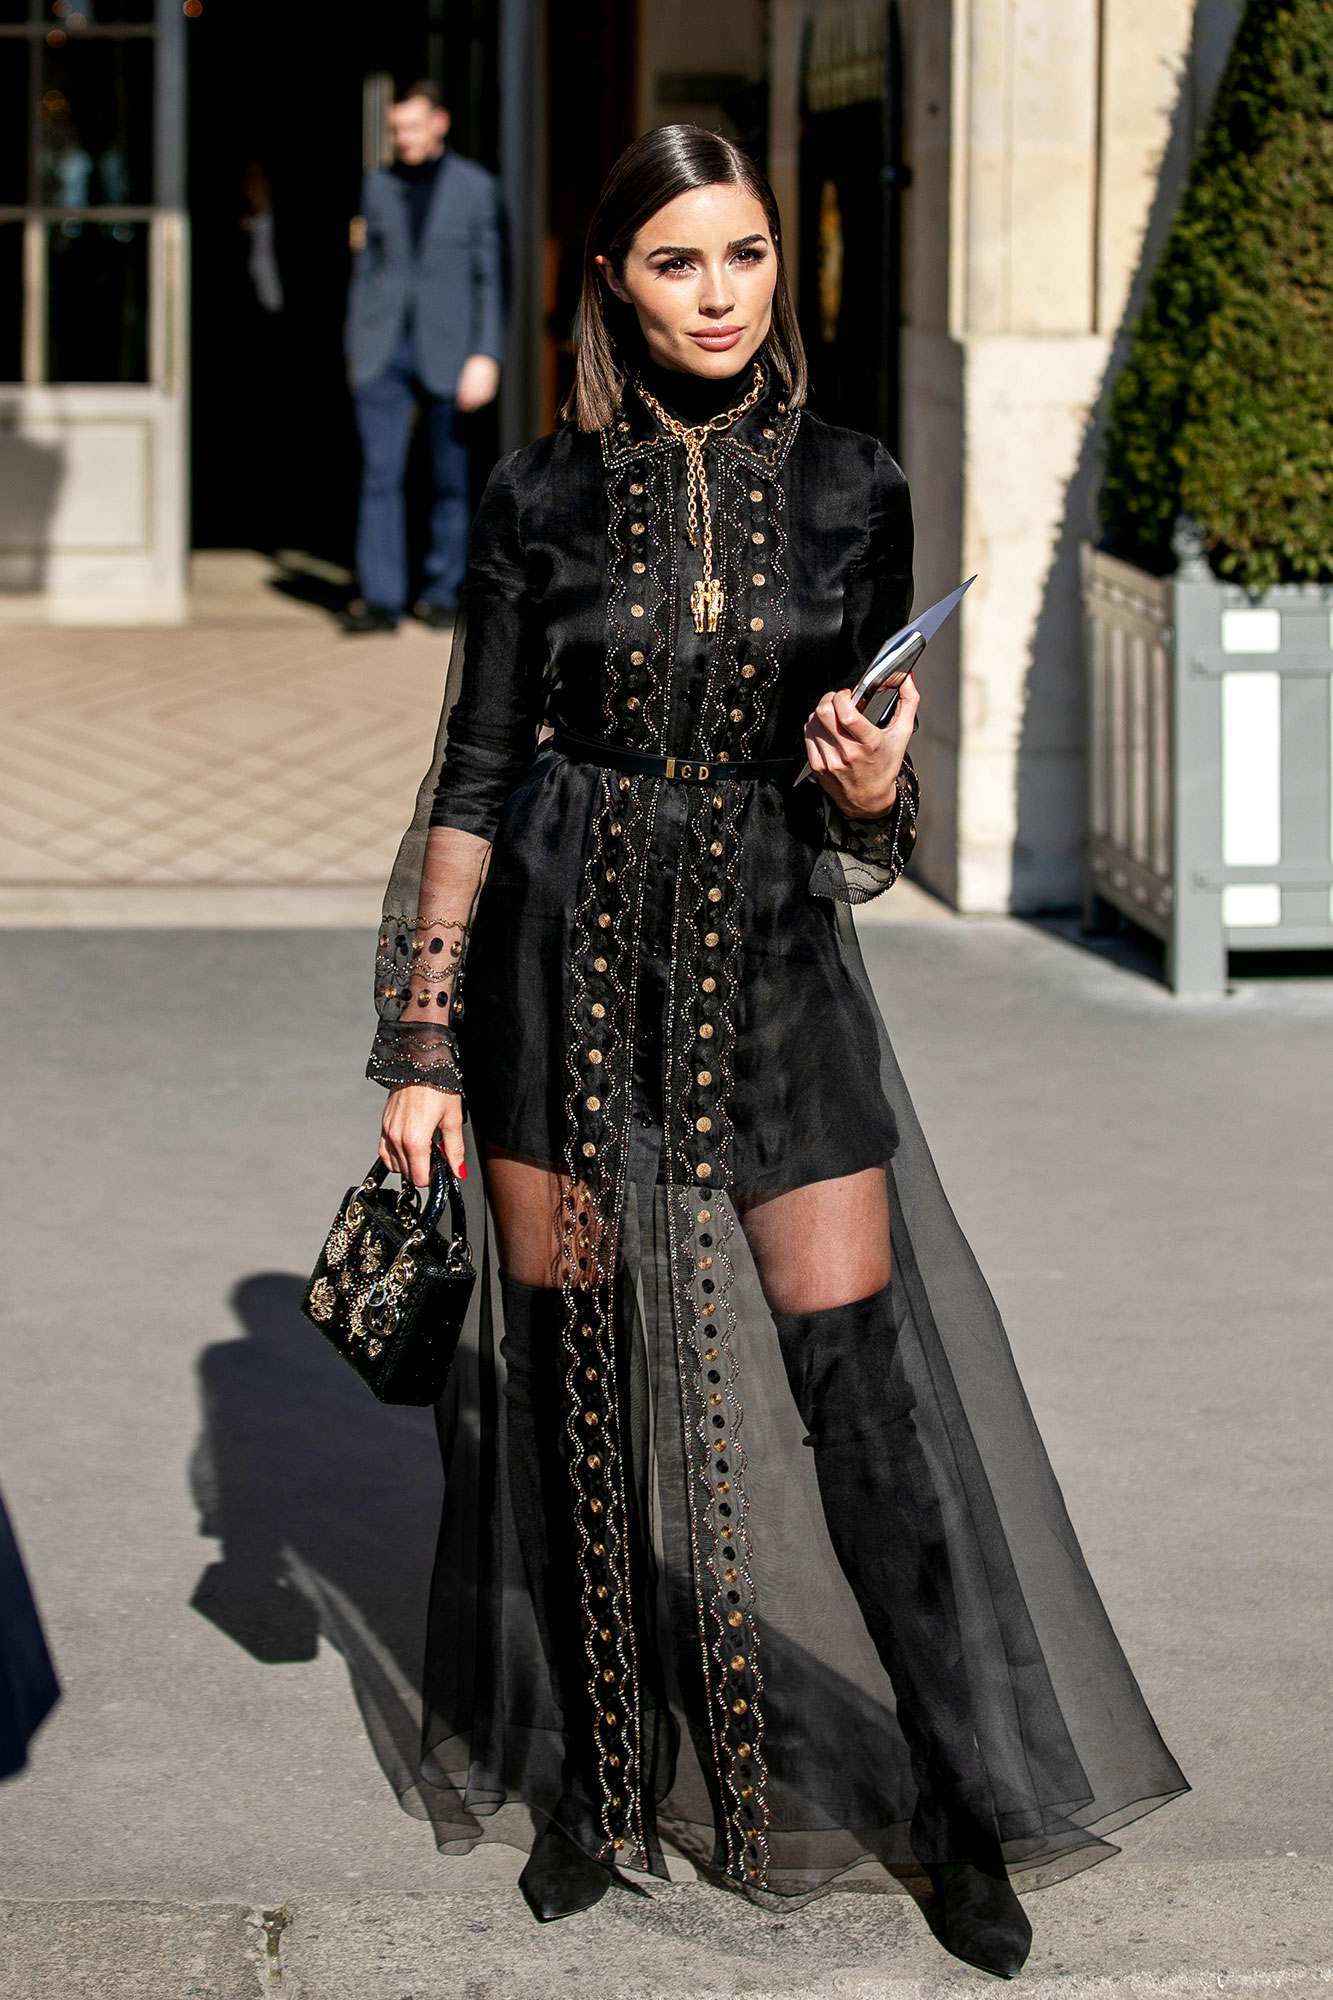 Olivia Culpo See the Stars' Street Style at Paris Fashion Week - The model proved black is anything but boring in her noir minidress and embellished sheer duster on Wednesday, February 26.